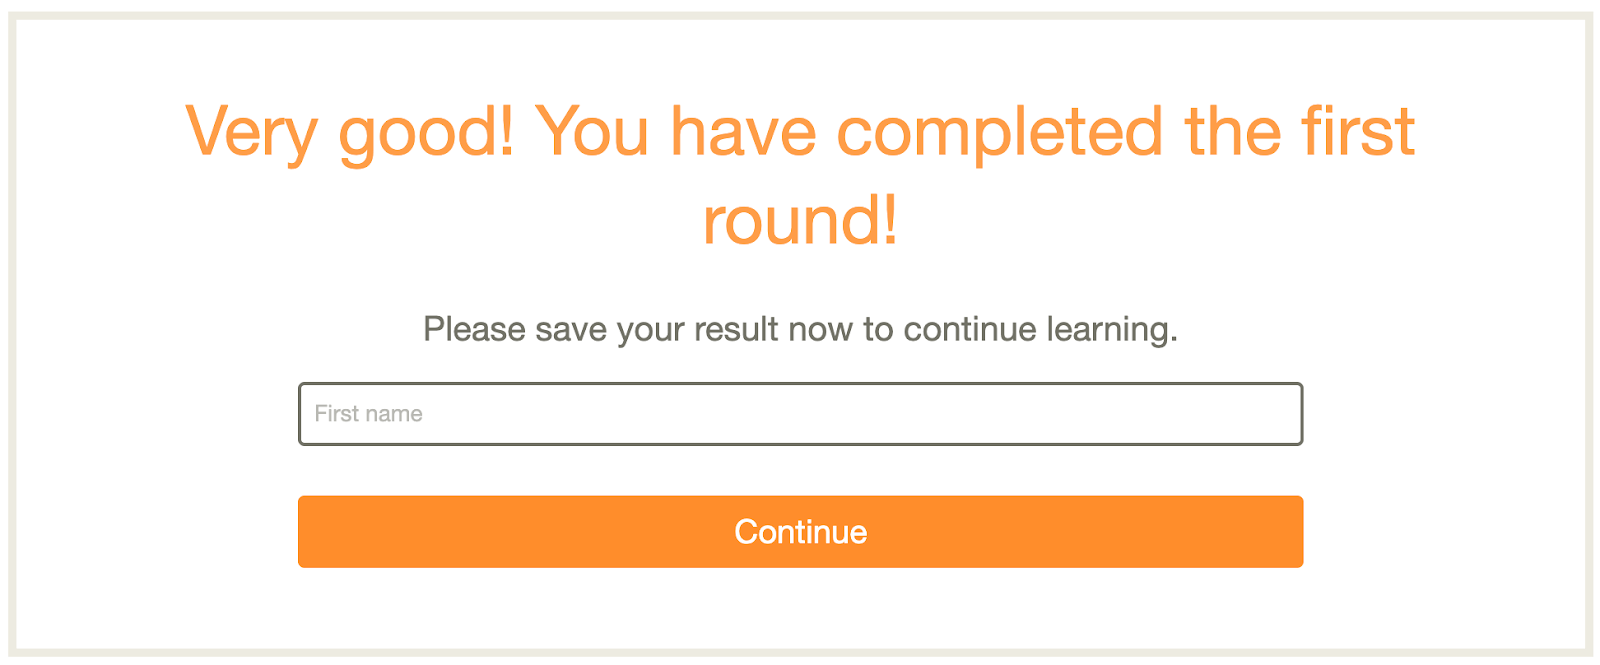 screenshot of babbel showing completion of first round of learning to use the app